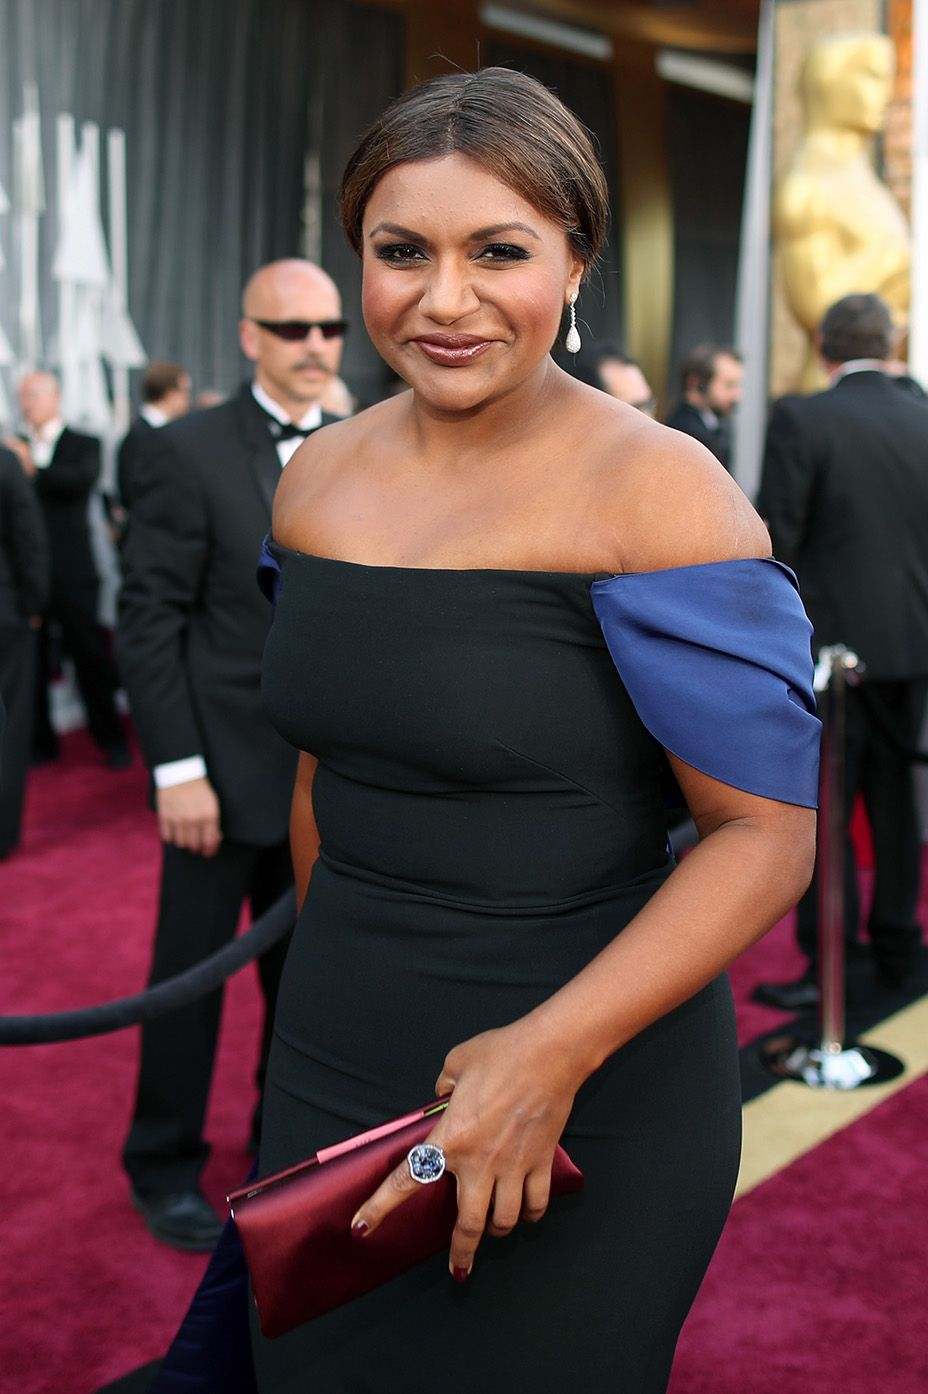 The hilarious and gorgeous Mindy Kaling looks stunning on the Red